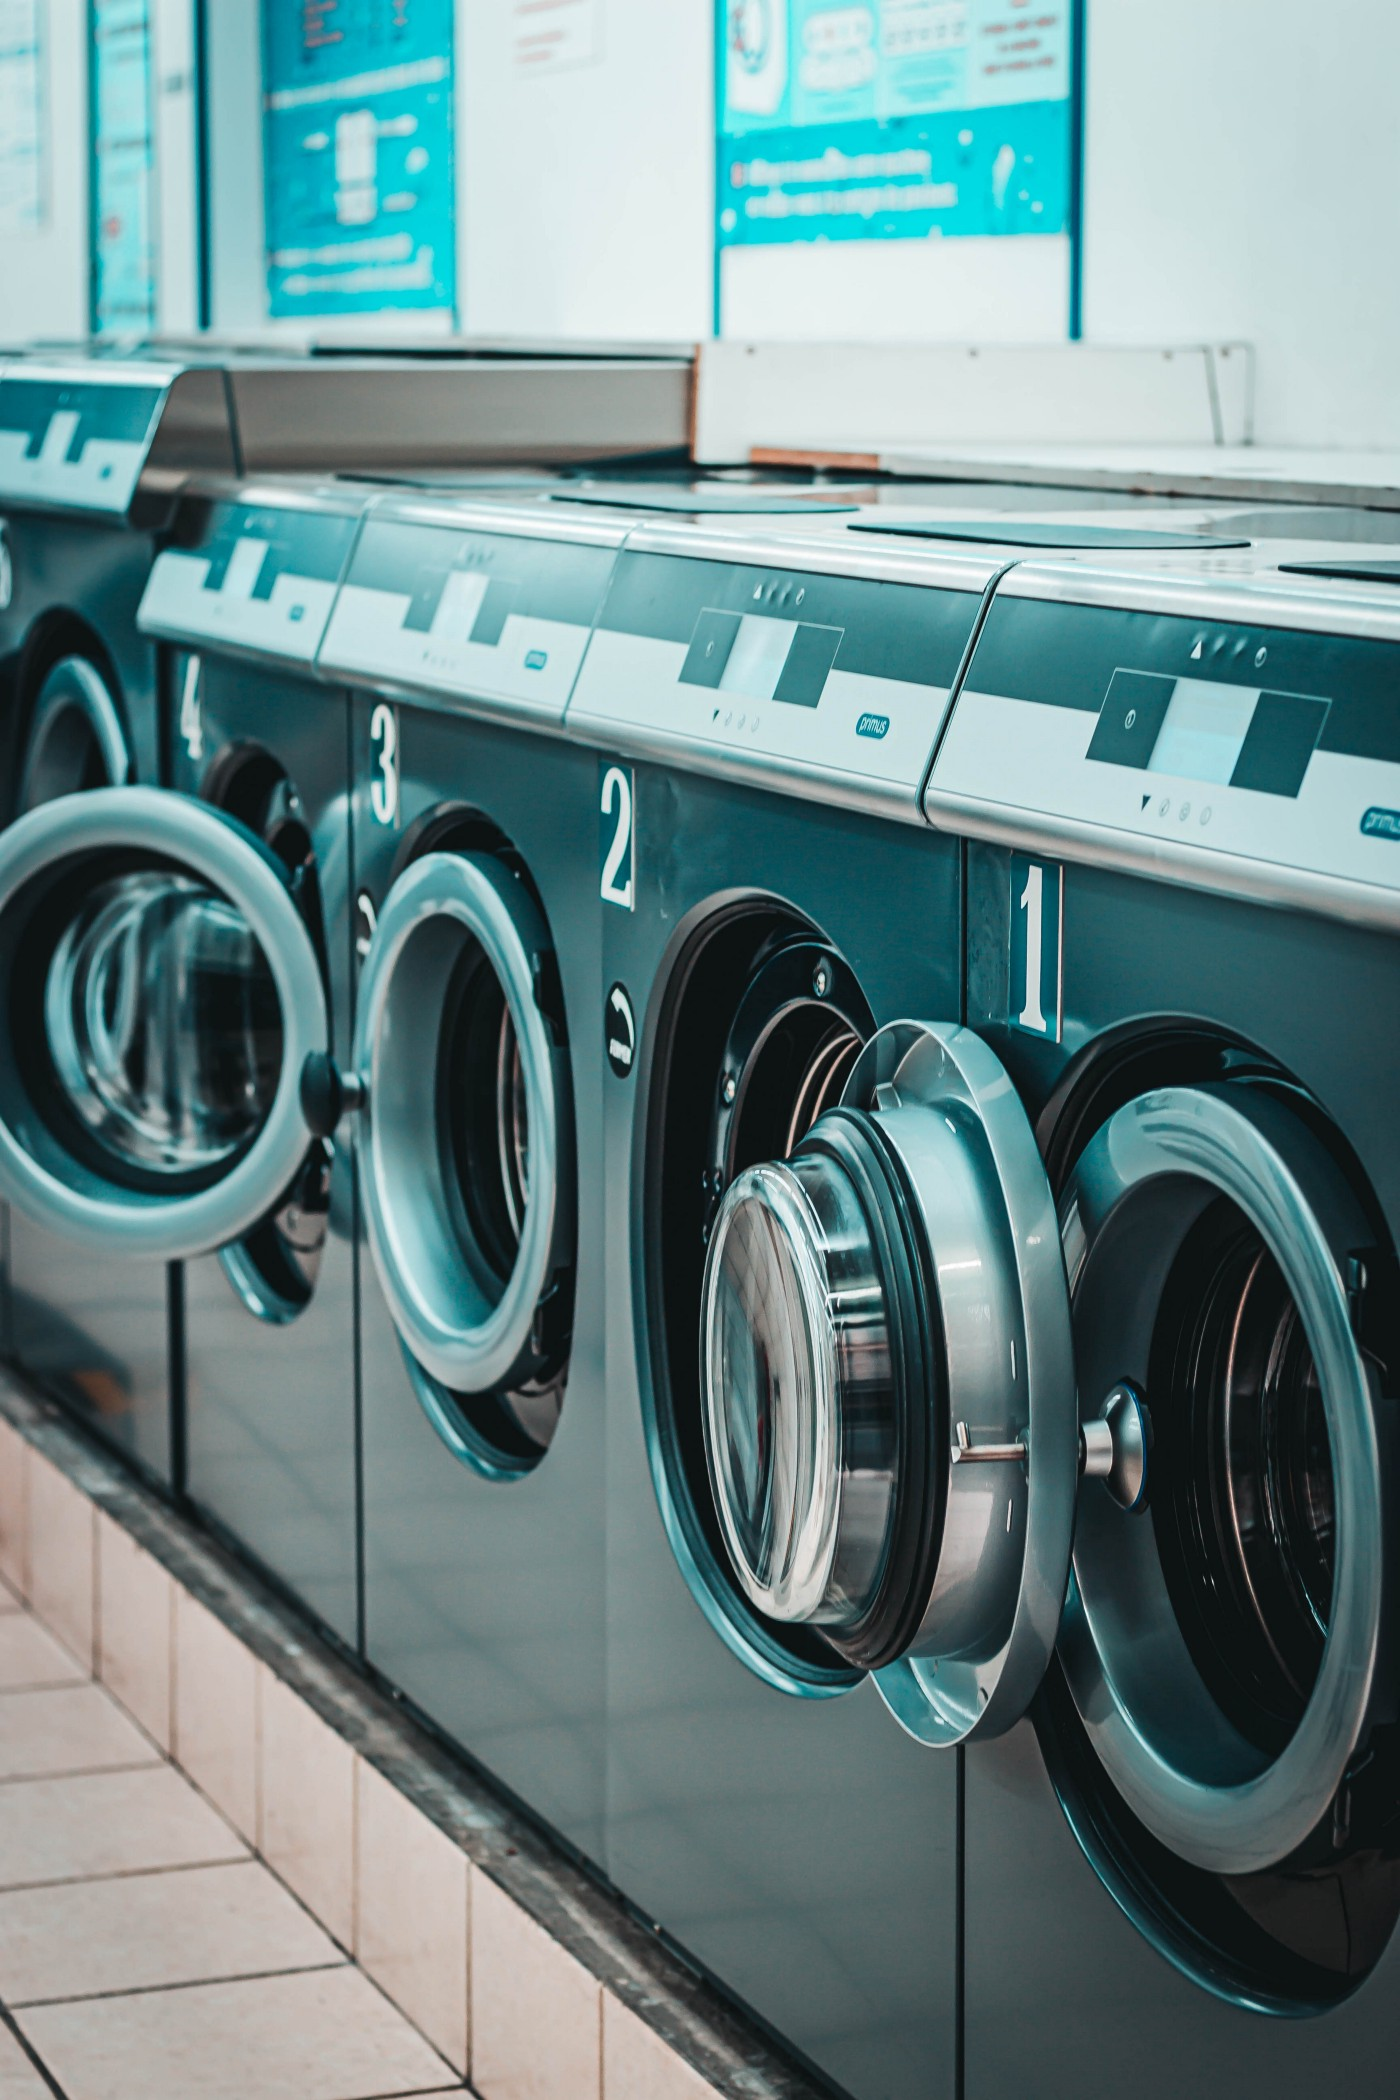 a row of washing machines in a laundry mat. a row of dryers in a laundry mat